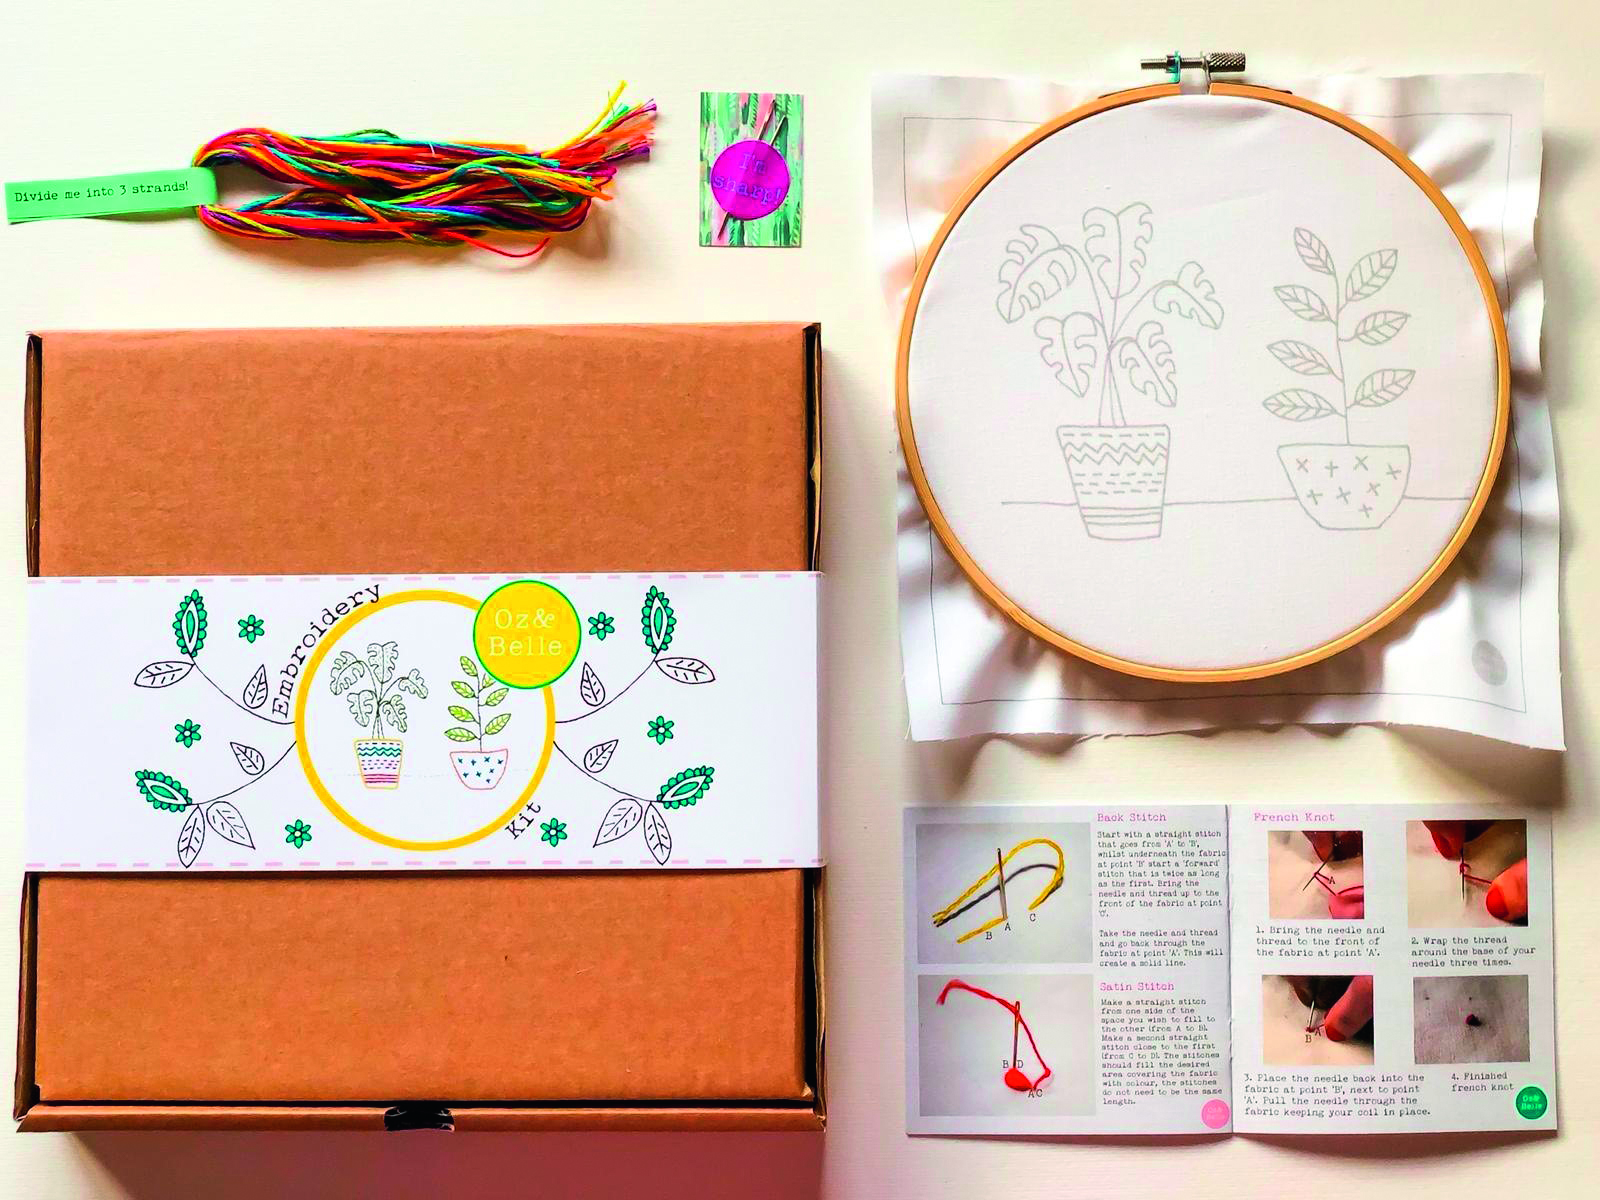 Oz and Belle stitching kit